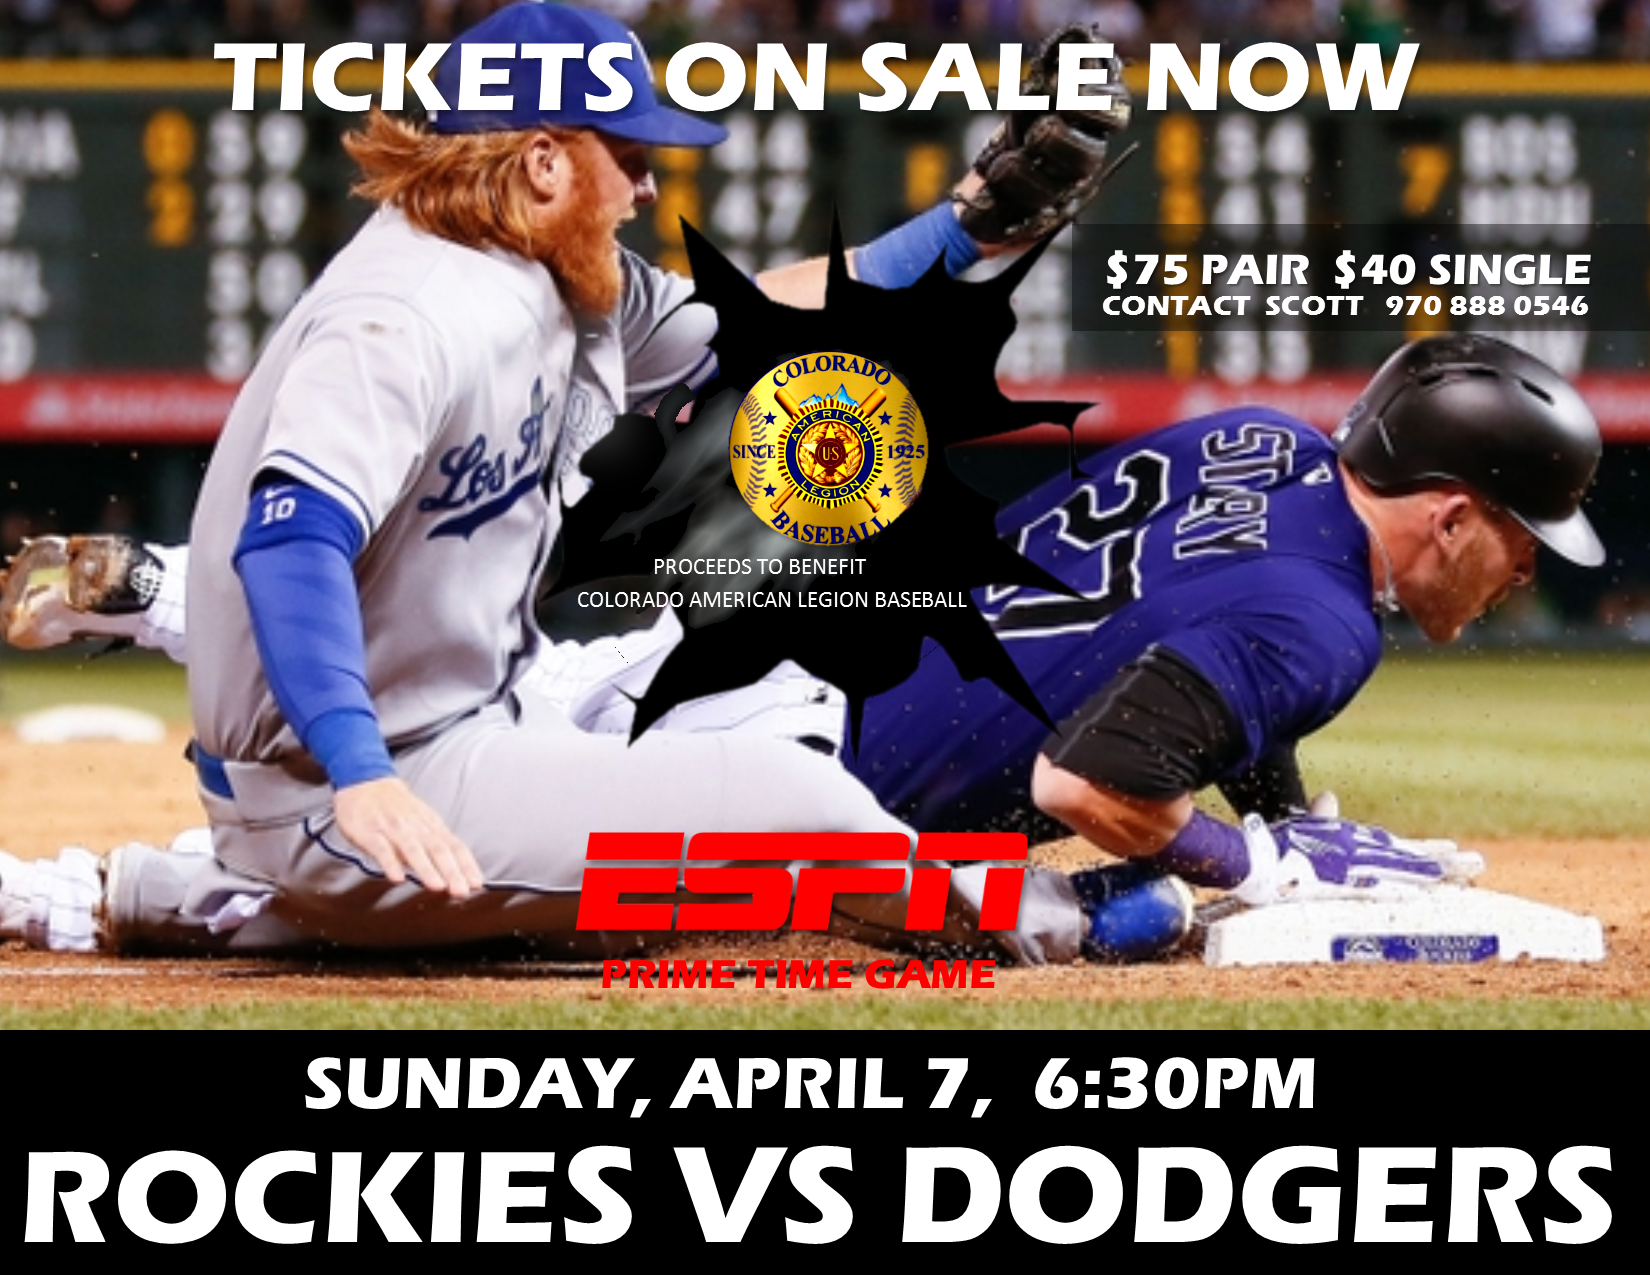 CR vs LAD Opening Weekend Game Tickets #6 Flyer - April 7th